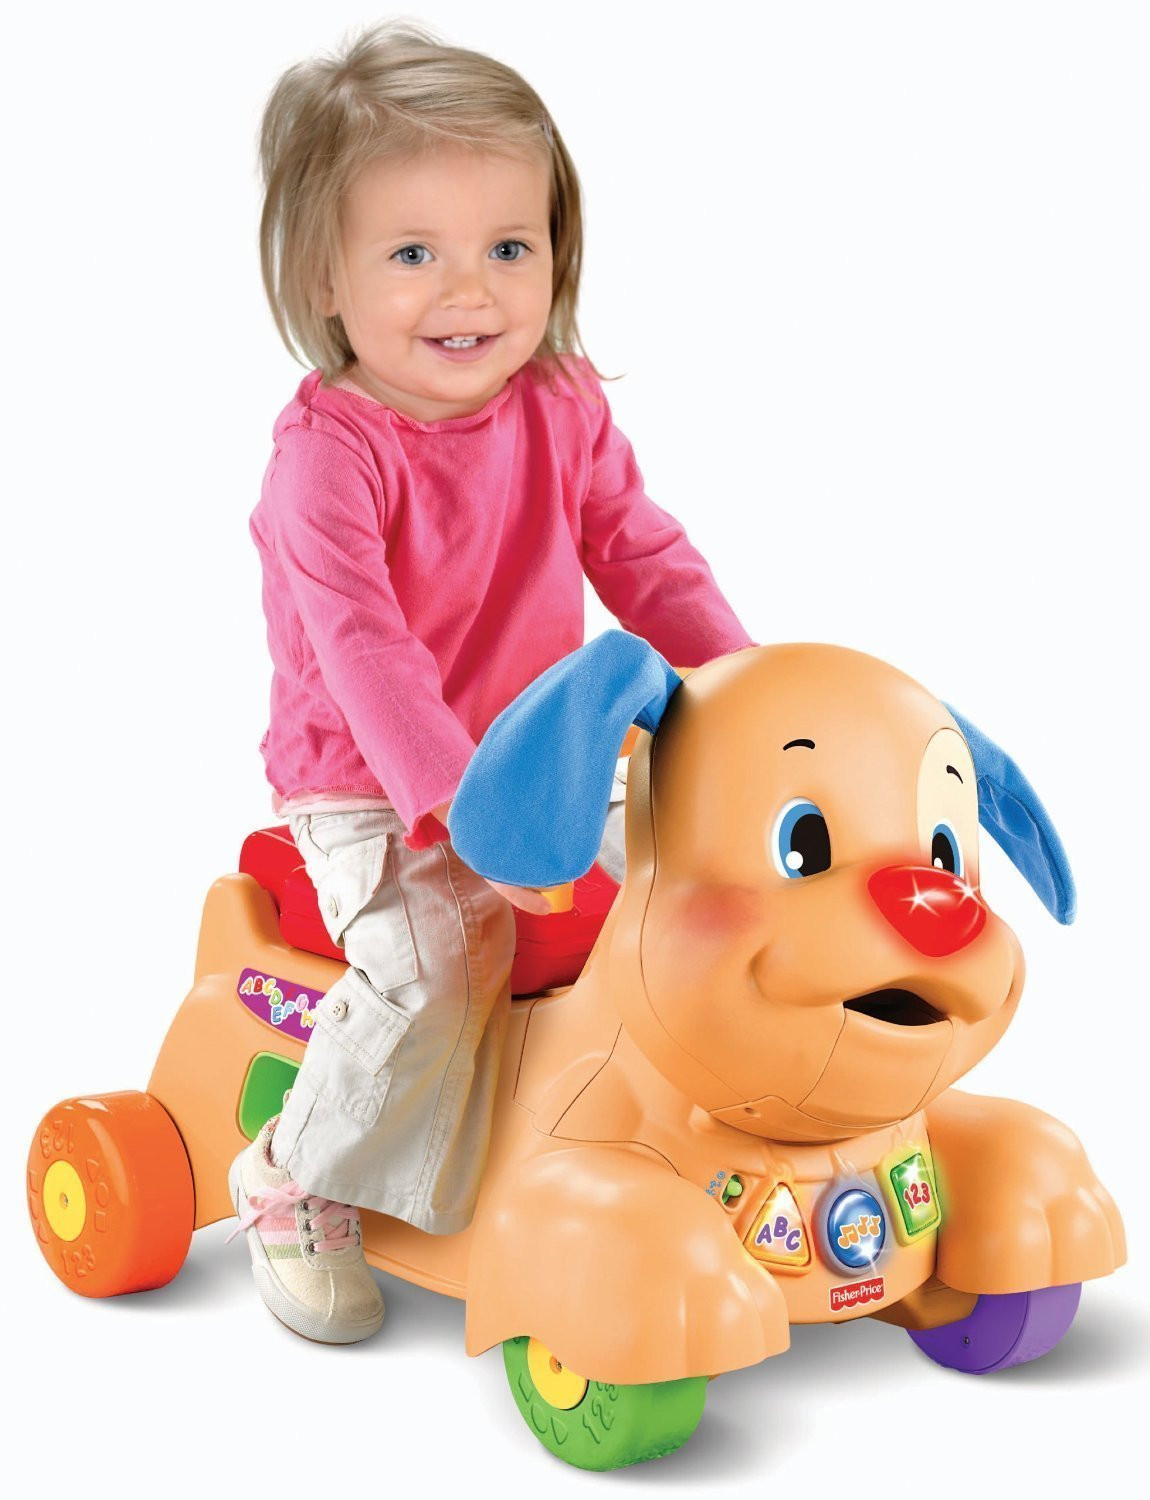 Best ideas about Gift Ideas For 1 Year Old Baby Girl . Save or Pin 25 Best Gifts for 1 Year Old Girls Now.